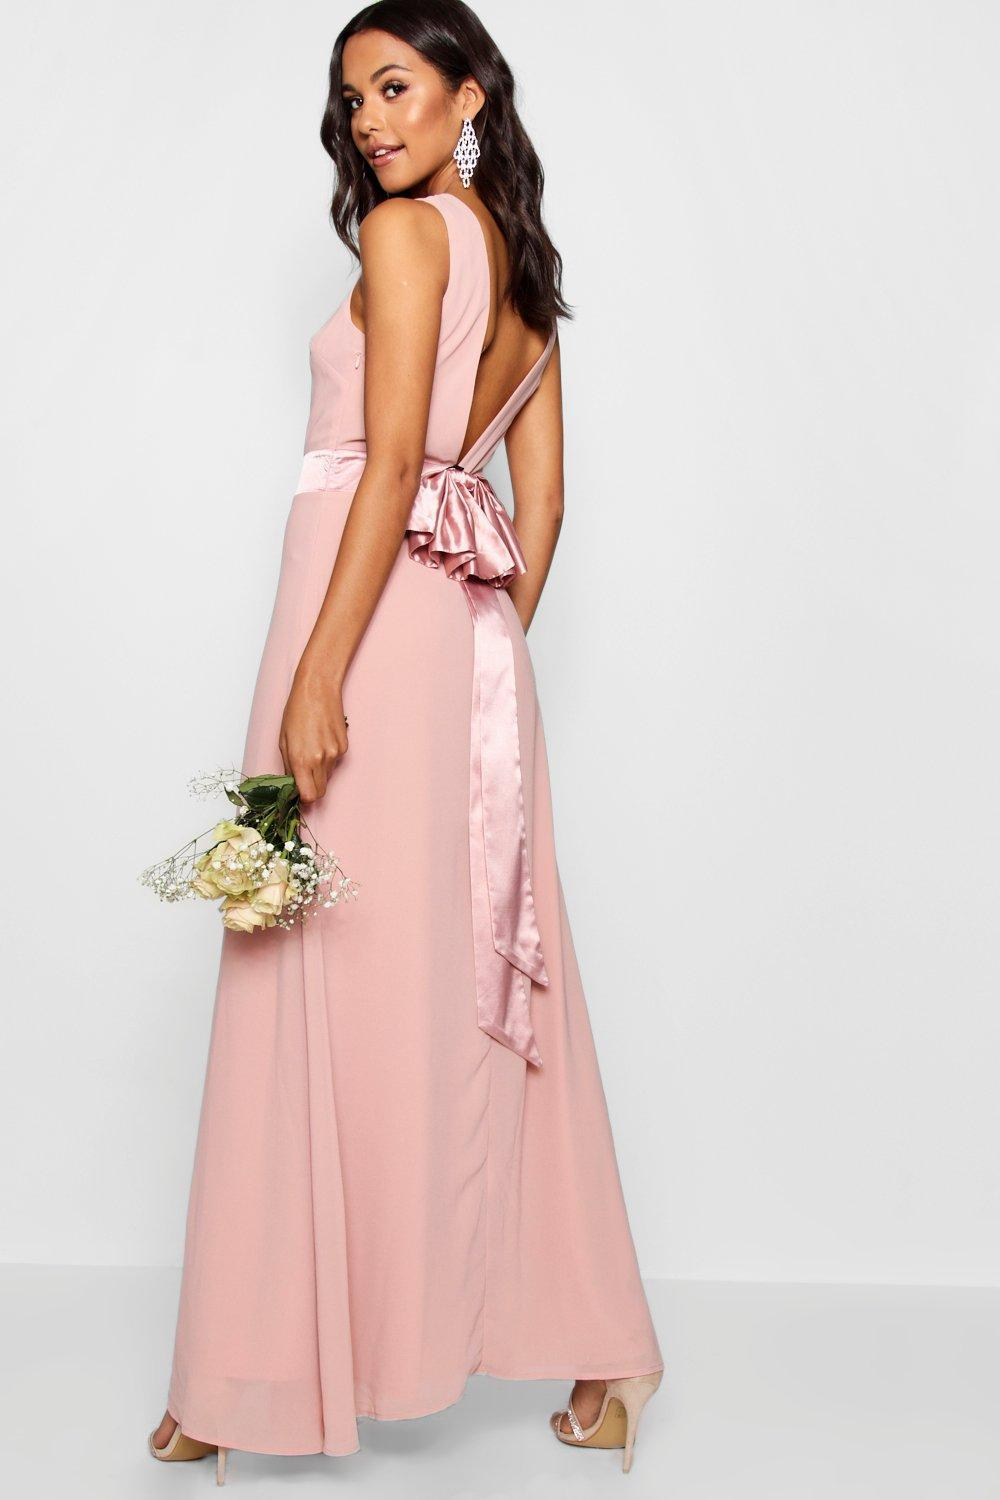 16d83bcc427 Lyst - Boohoo Cara Bow Back Maxi Dress in Pink - Save 27%